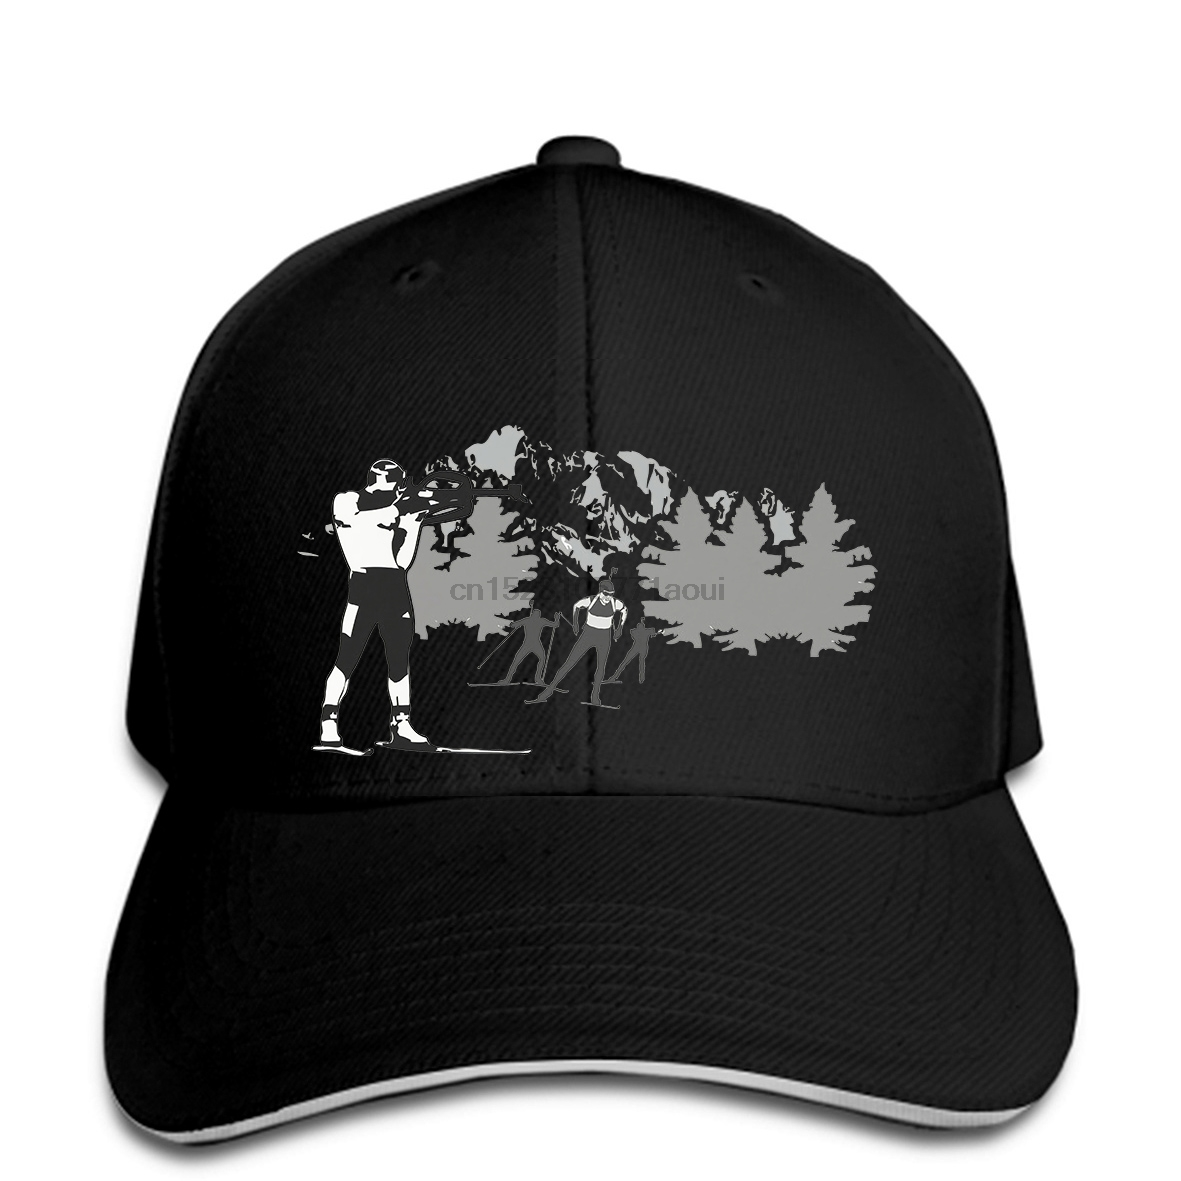 Baseball Cap Printed Men Print Hat Snapbacks Biathlon Women Baseball Caps